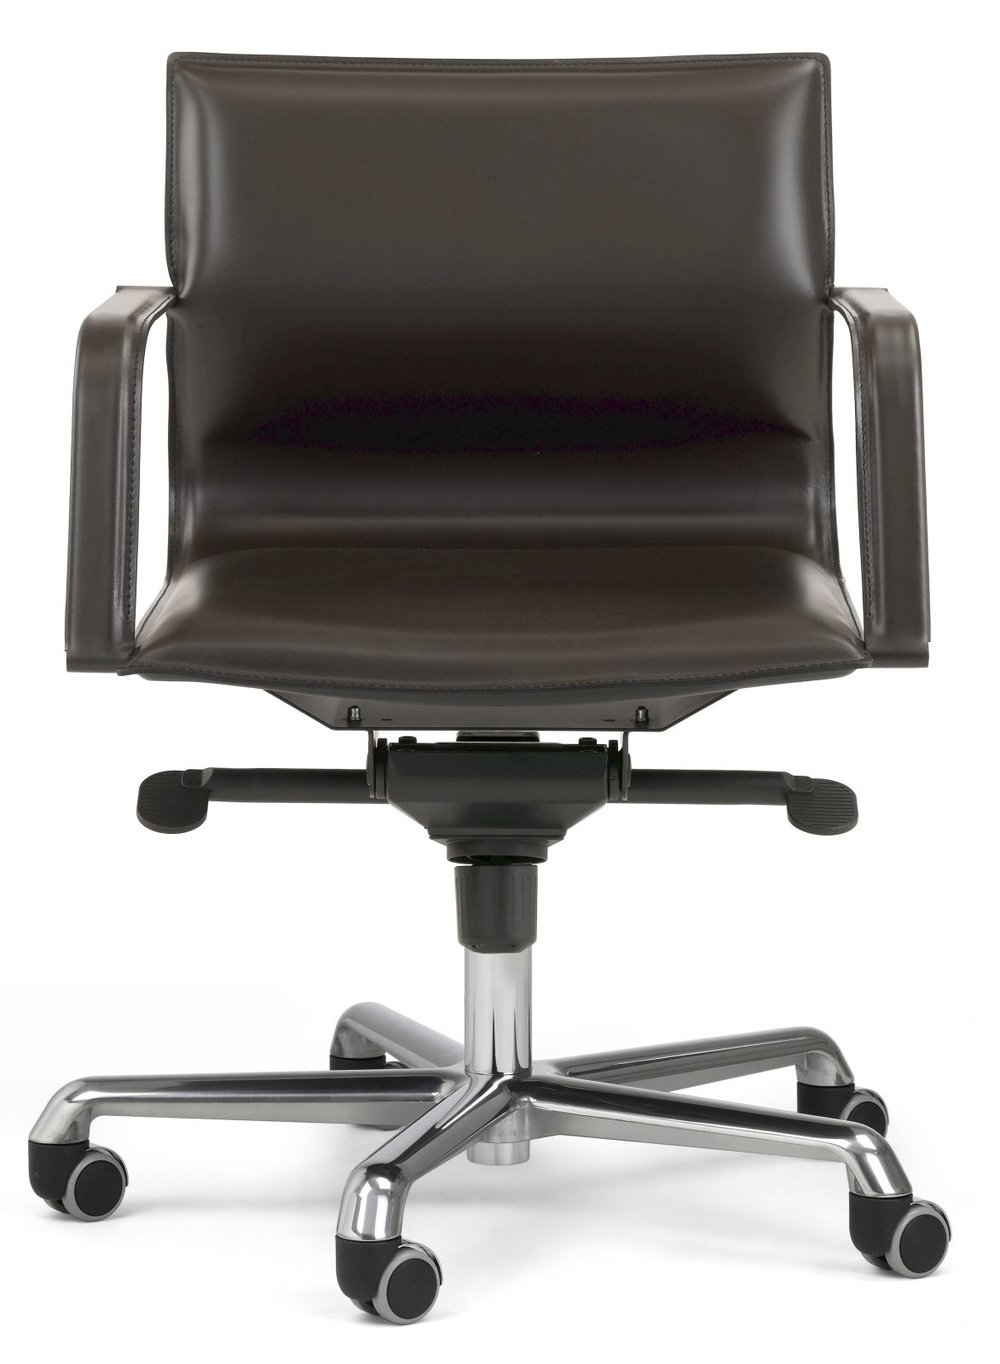 modern-office-chairs-Italian-furniture-designer-chairs (49).jpg